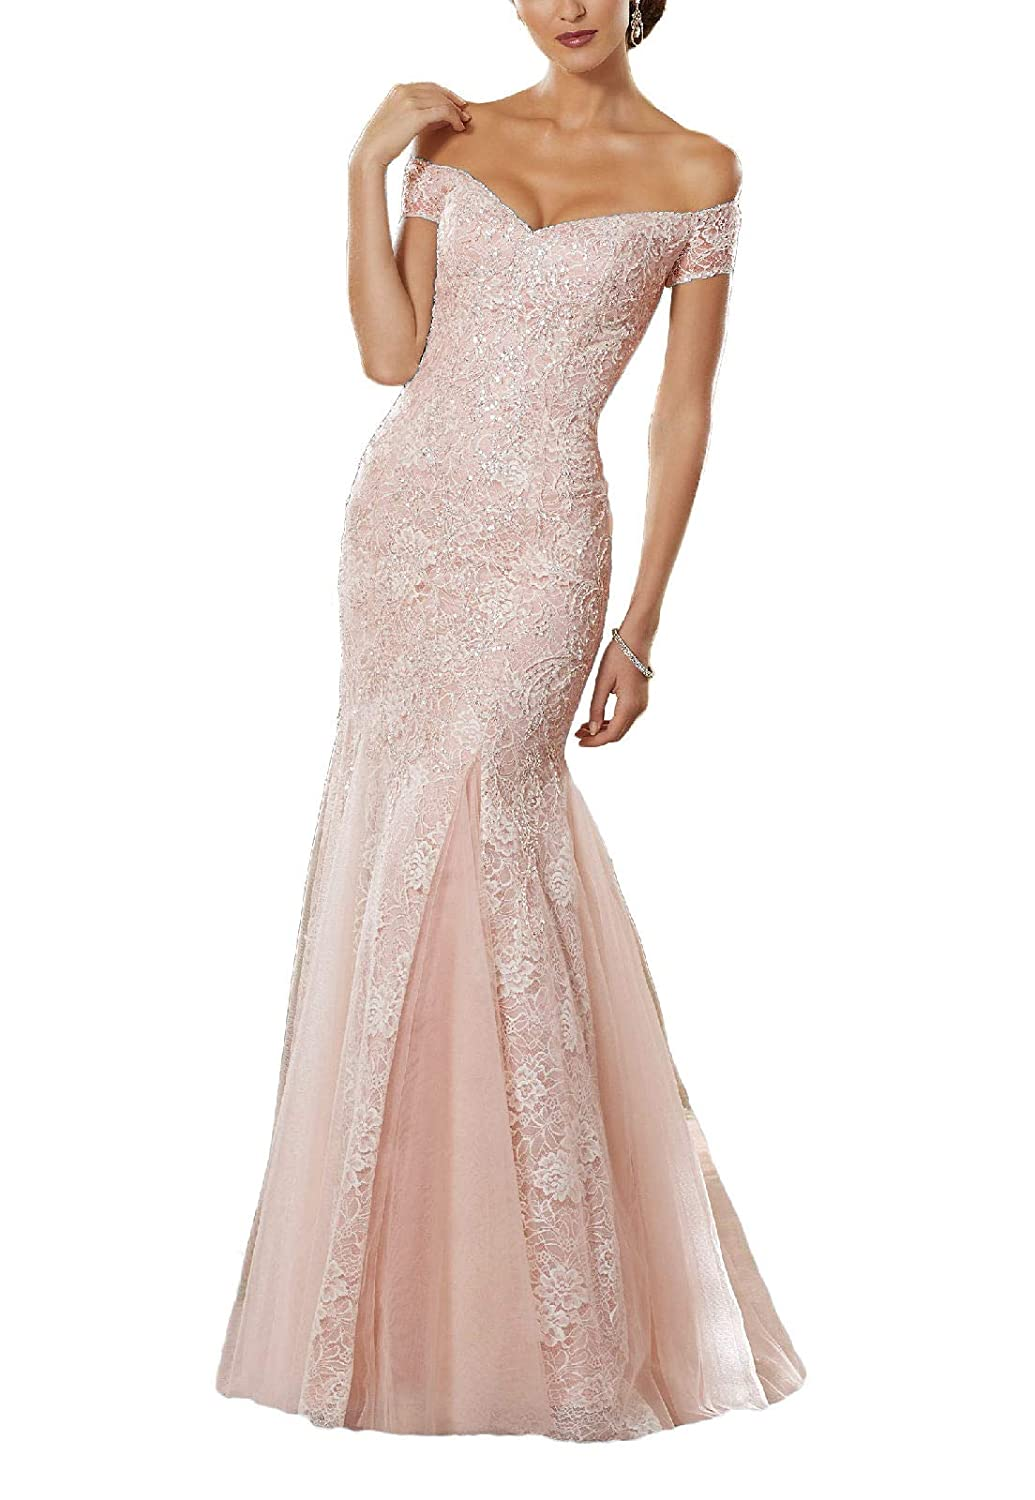 Pearl Pink Yisha Bello Women's Off The Shoulder Mermaid Crystal Beaded Prom Dress Long Lace Evening Formal Gowns